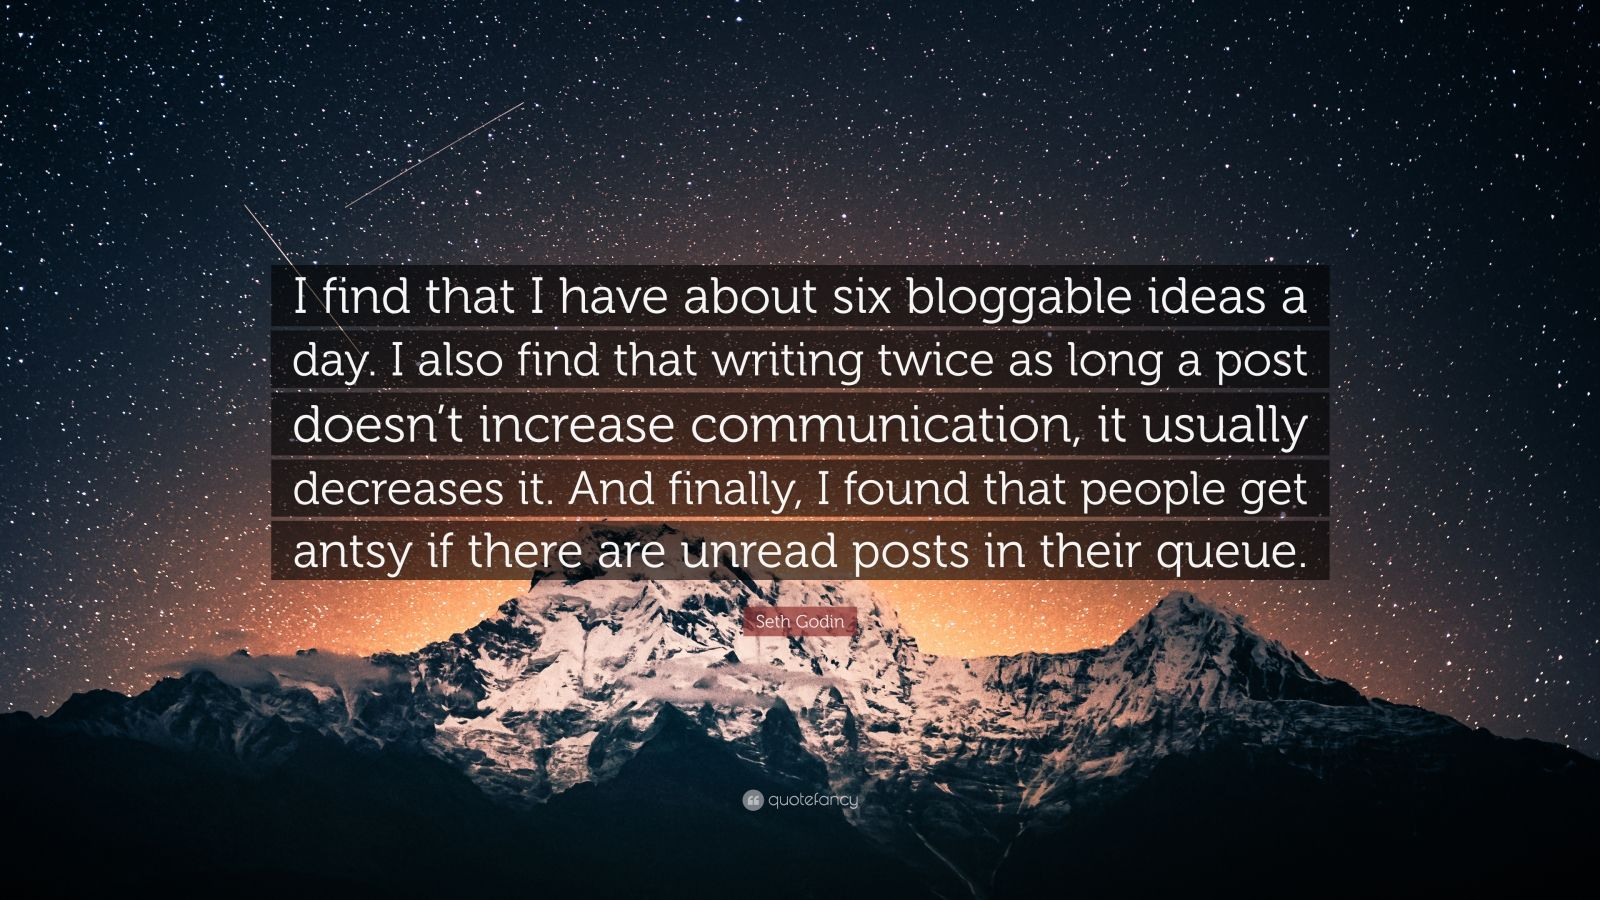 """Seth Godin Quote: """"I find that I have about six bloggable ideas a day. I also find that writing twice as long a post doesn't increase communication, it usually decreases it. And finally, I found that people get antsy if there are unread posts in their queue."""""""